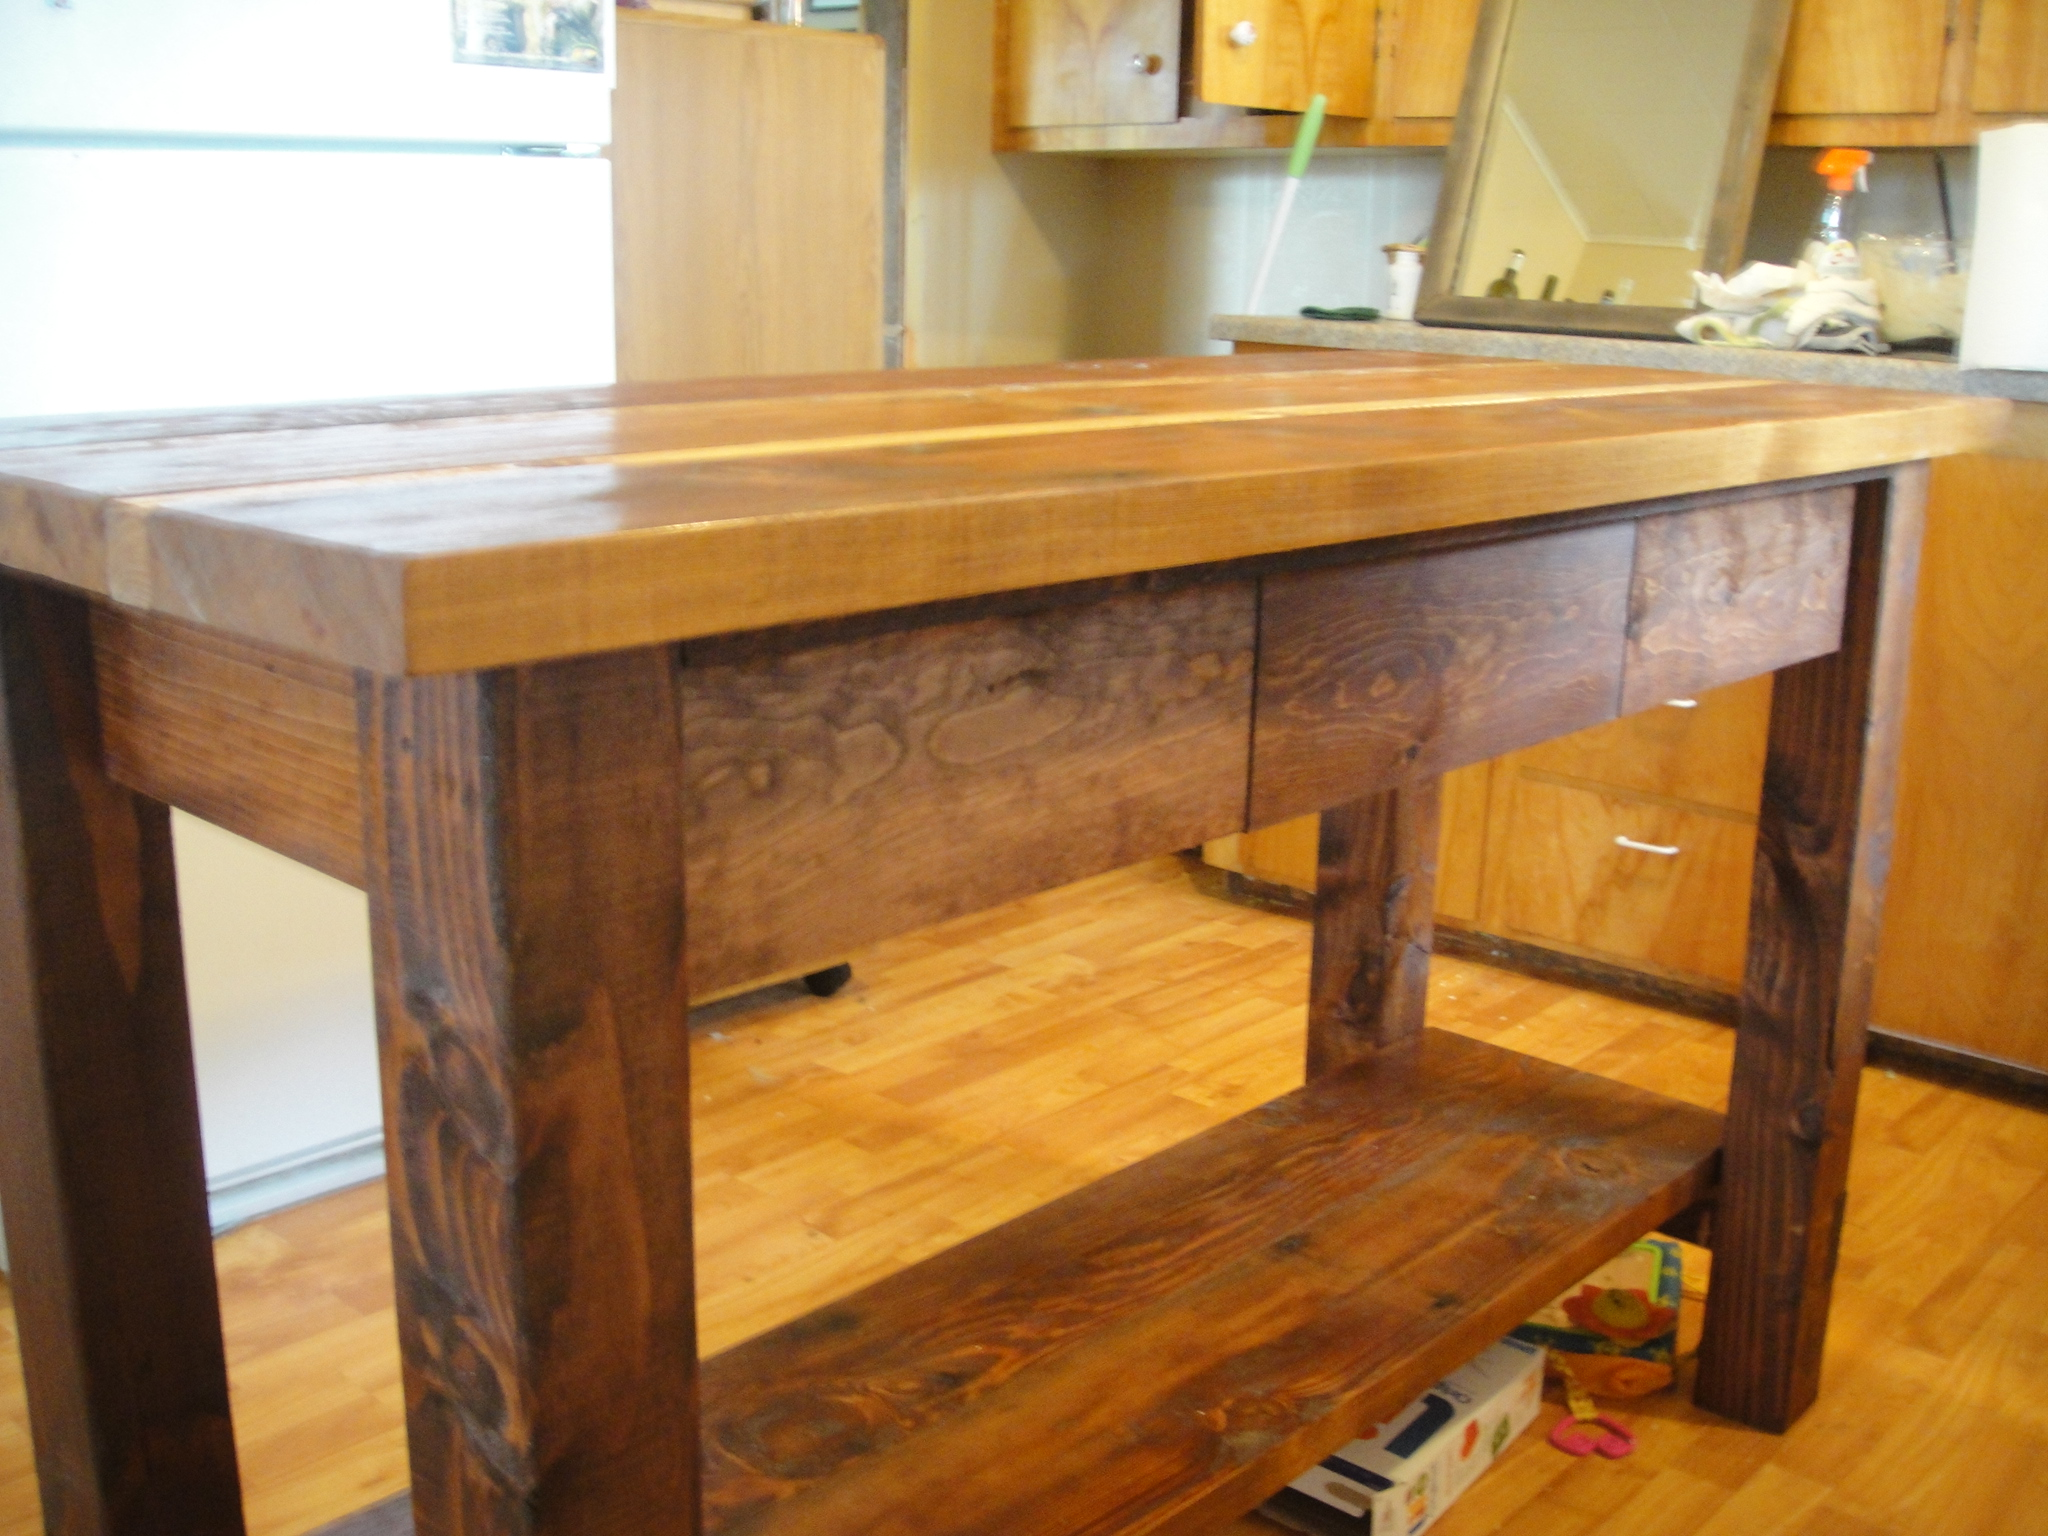 Ana white kitchen island from reclaimed wood diy projects Kitchen island plans